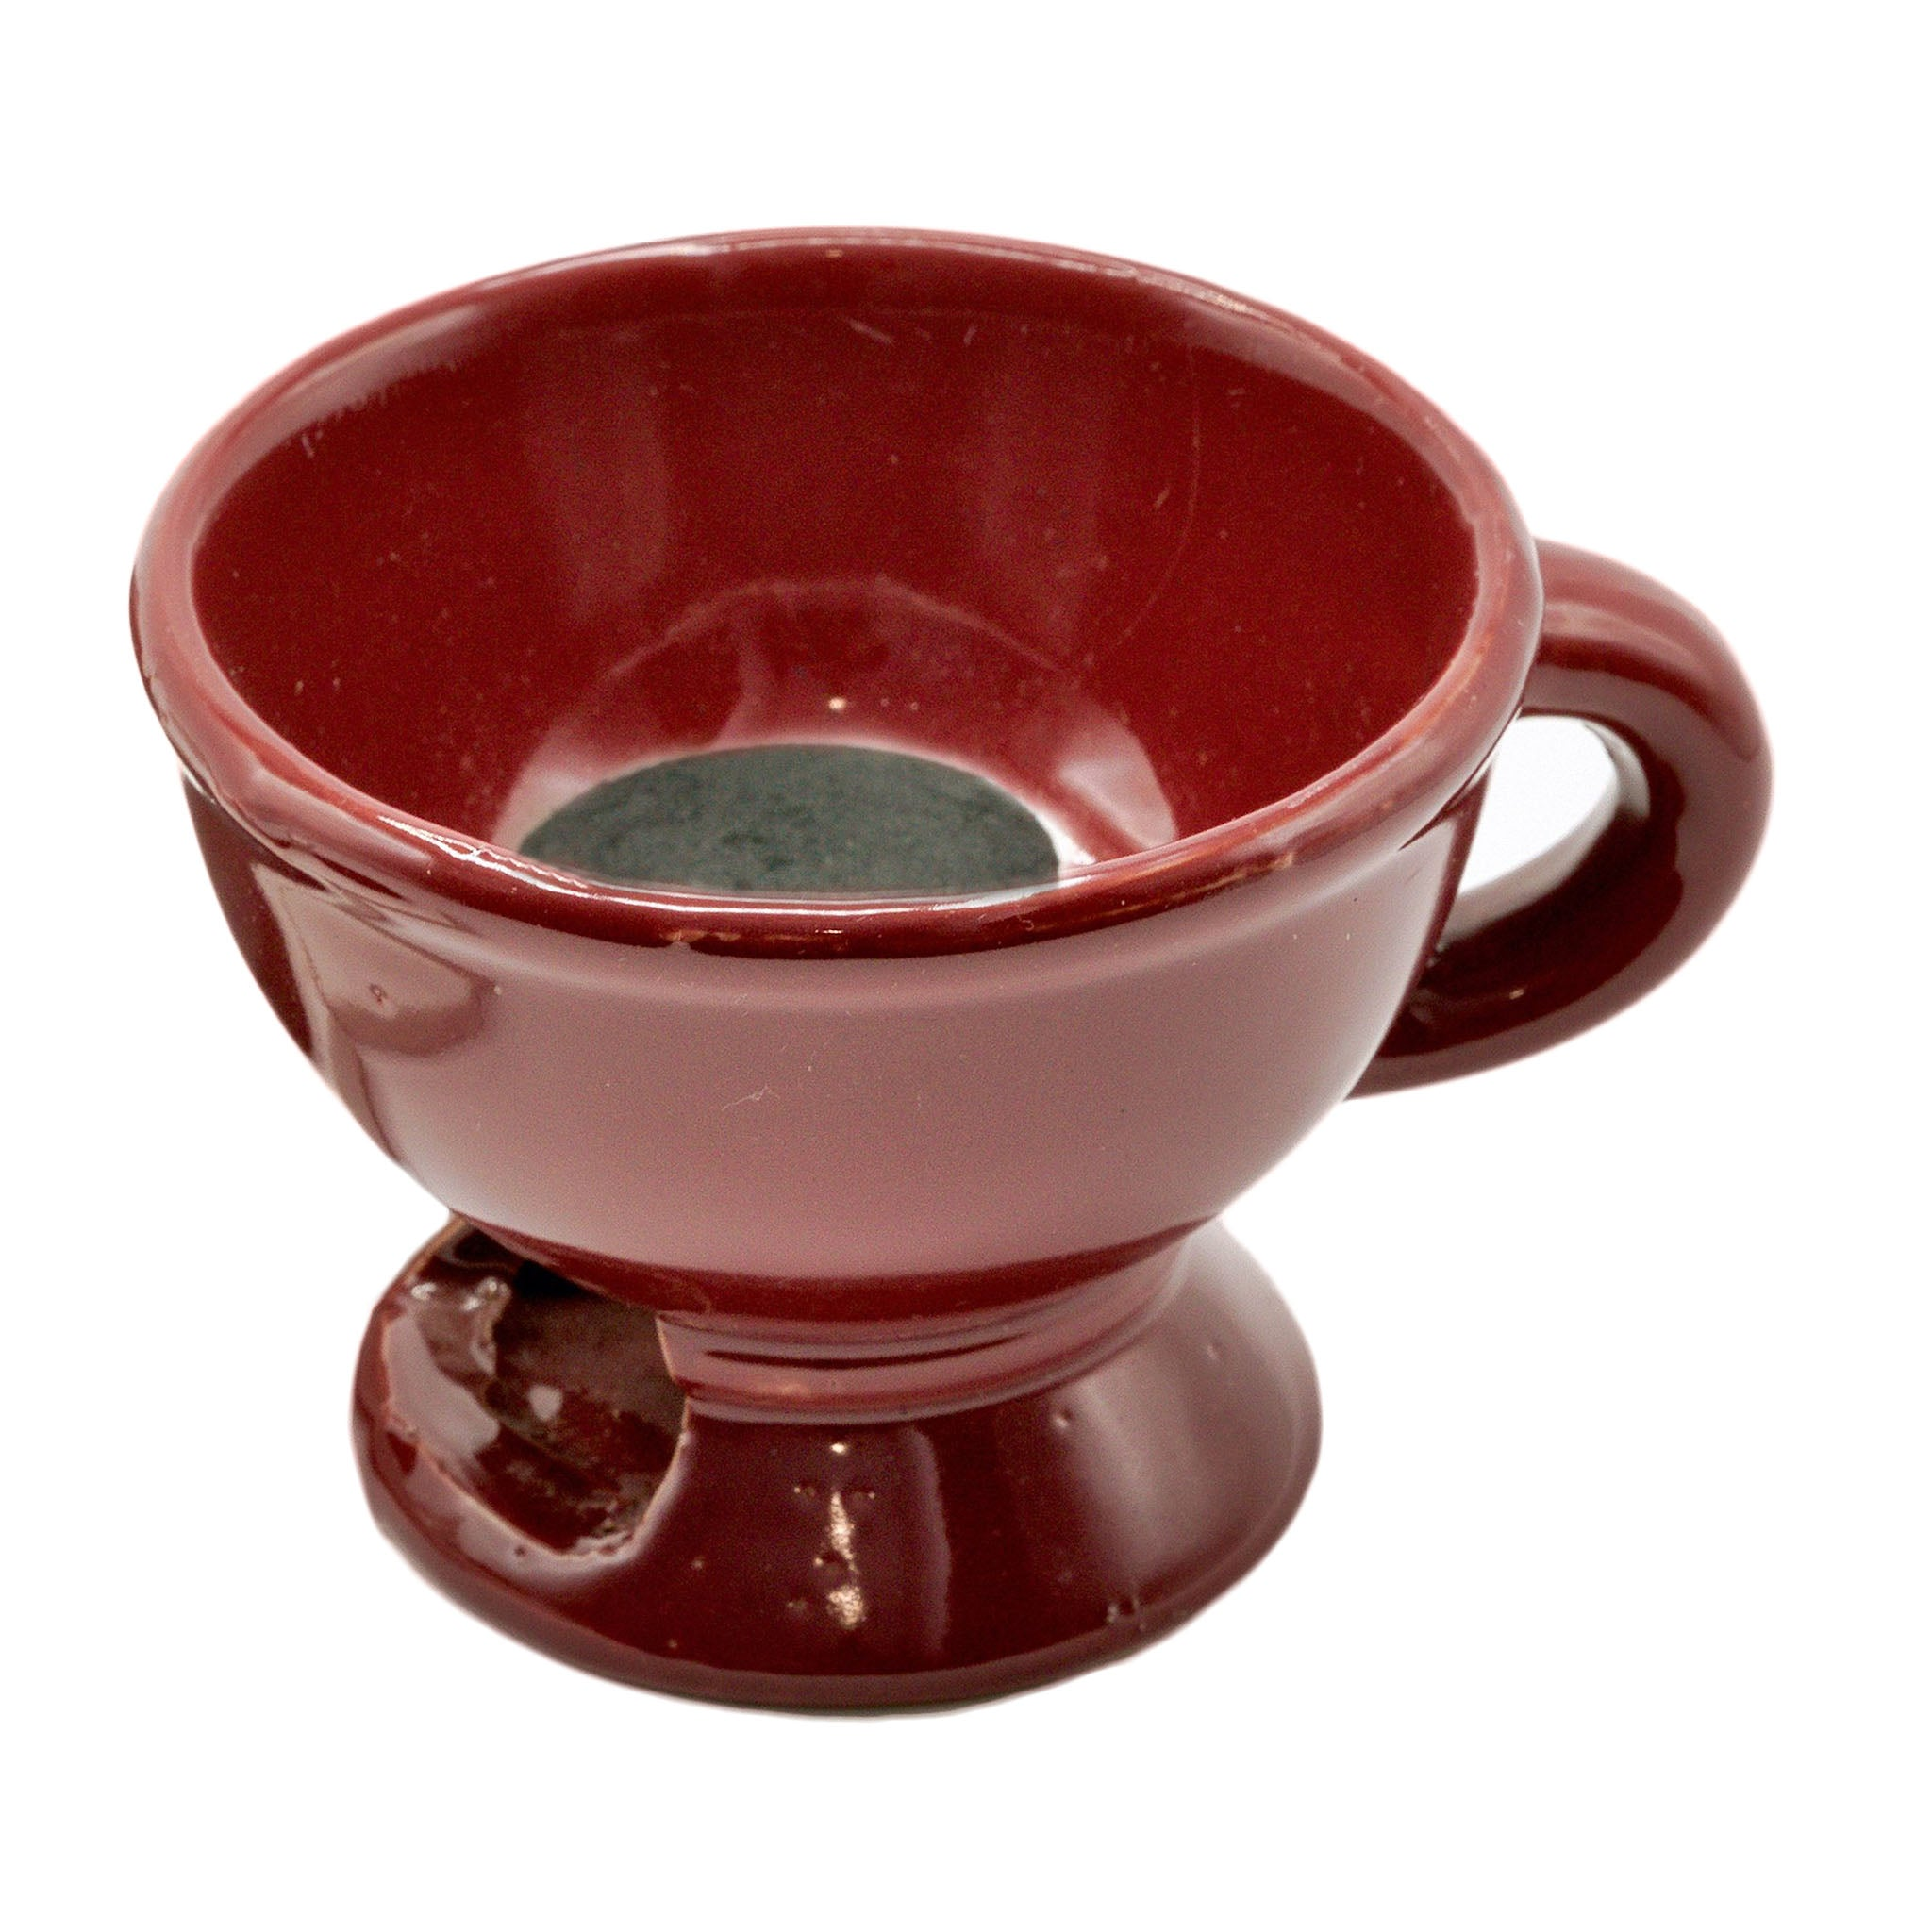 MAROON INCENSE POT (CHARCOAL SOLD SEPARATELY)